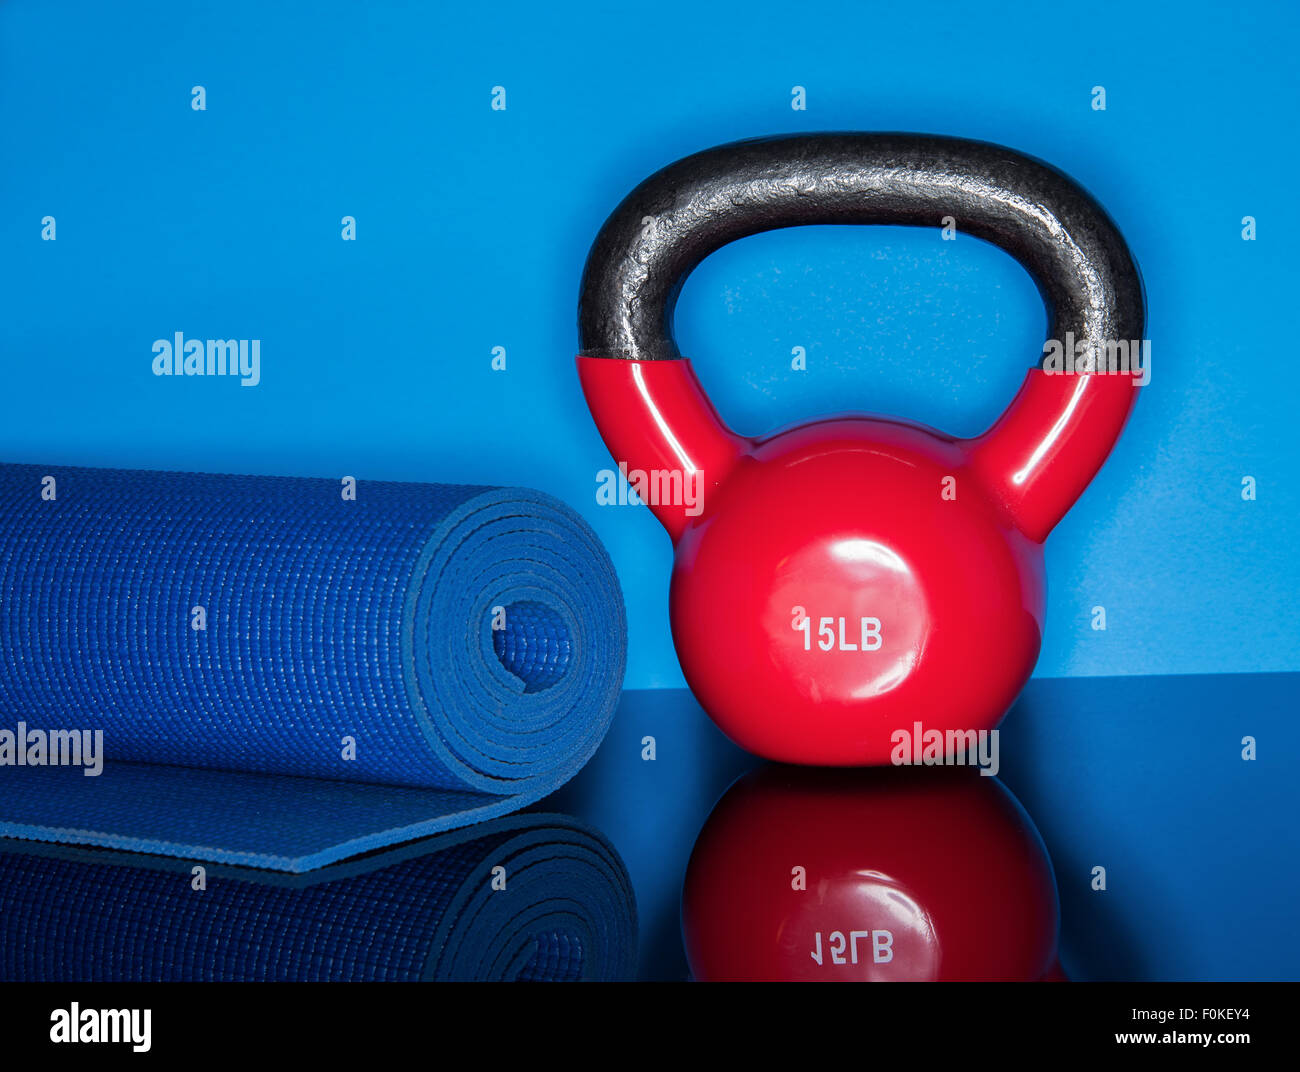 Red Kettle ball on blue background with mat roll - Stock Image